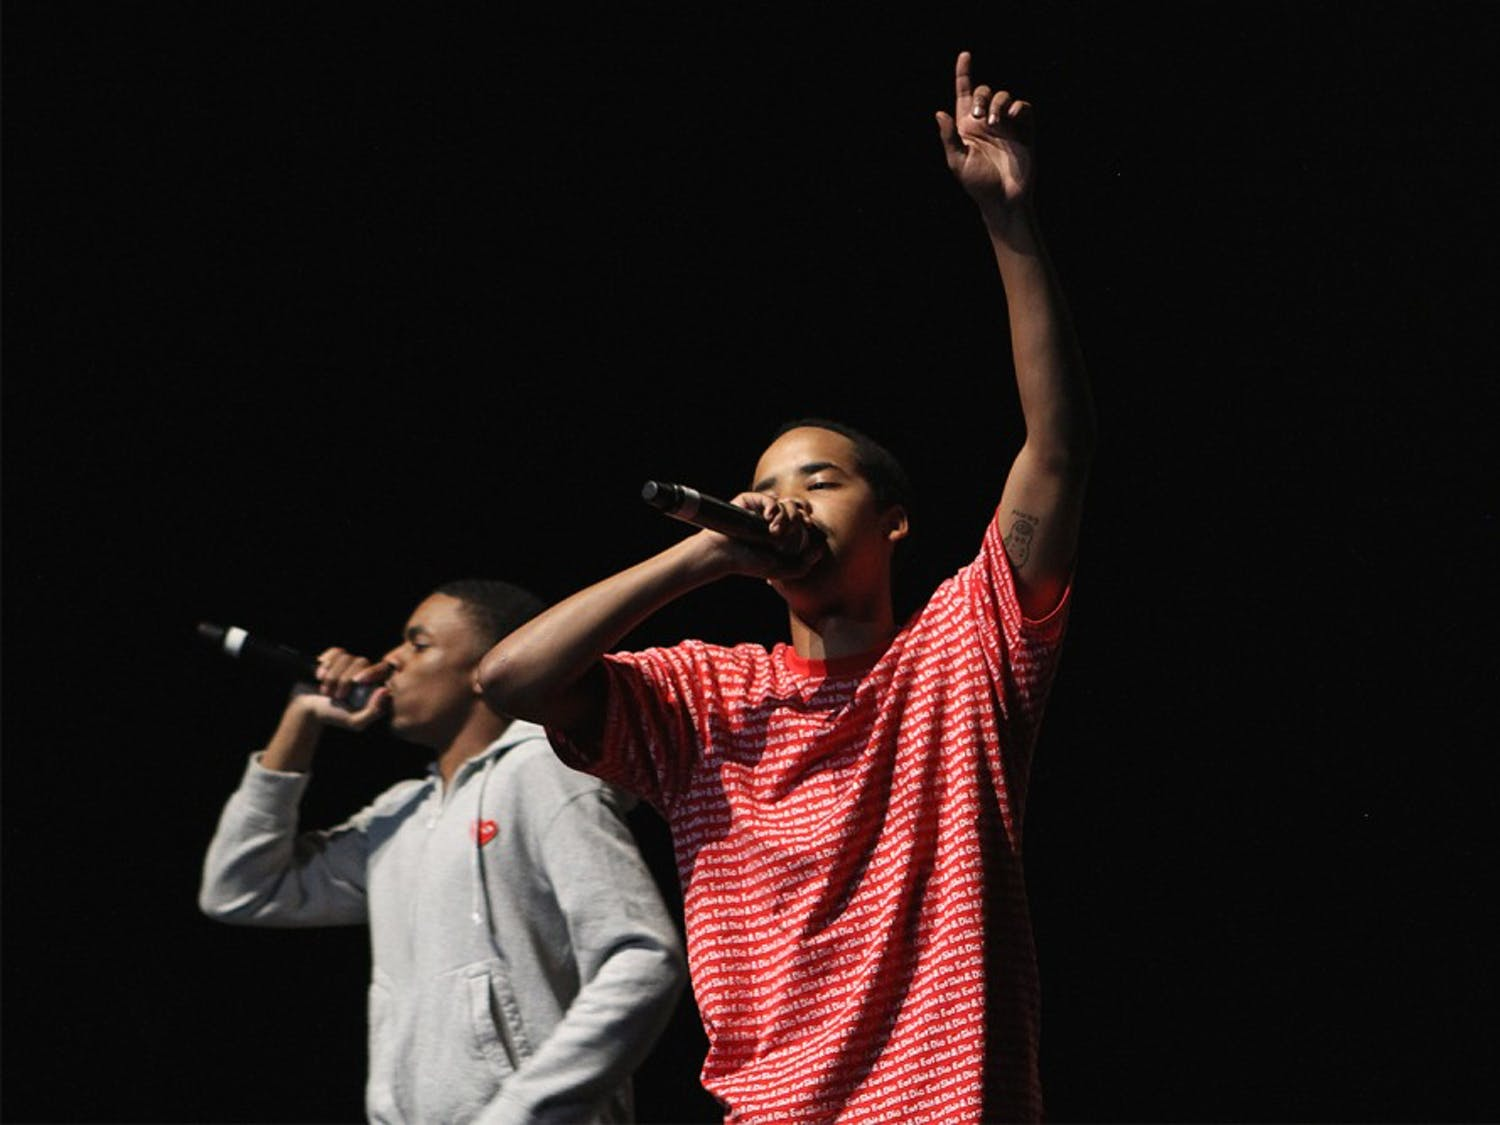 Earl Sweatshirt (in red) and Vince Staples (in gray) performed in UNC's 2014 Homecoming Concert at Memorial Hall on Wednesday. Sweatshirt is known as part of the alternative rap collective Odd Future Wolf Game Kill Them All.